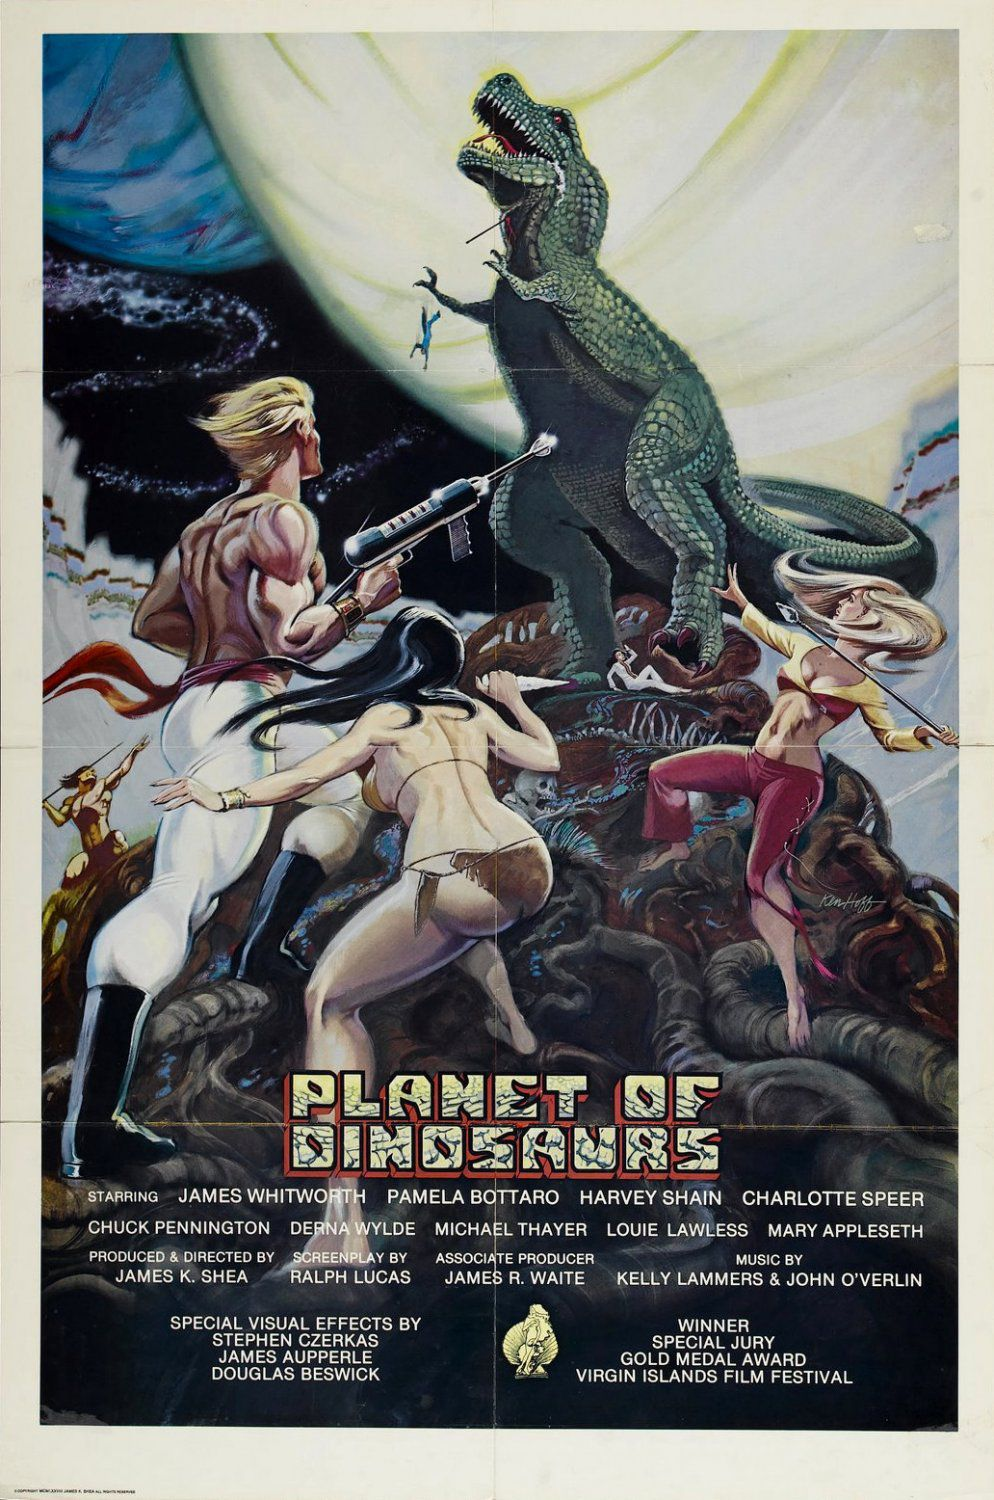 Planet of Dinosaurs (1979) - Cast: Mary Appleseth, Harvey Shain, Derna Wylde, Max Thayer - film poster